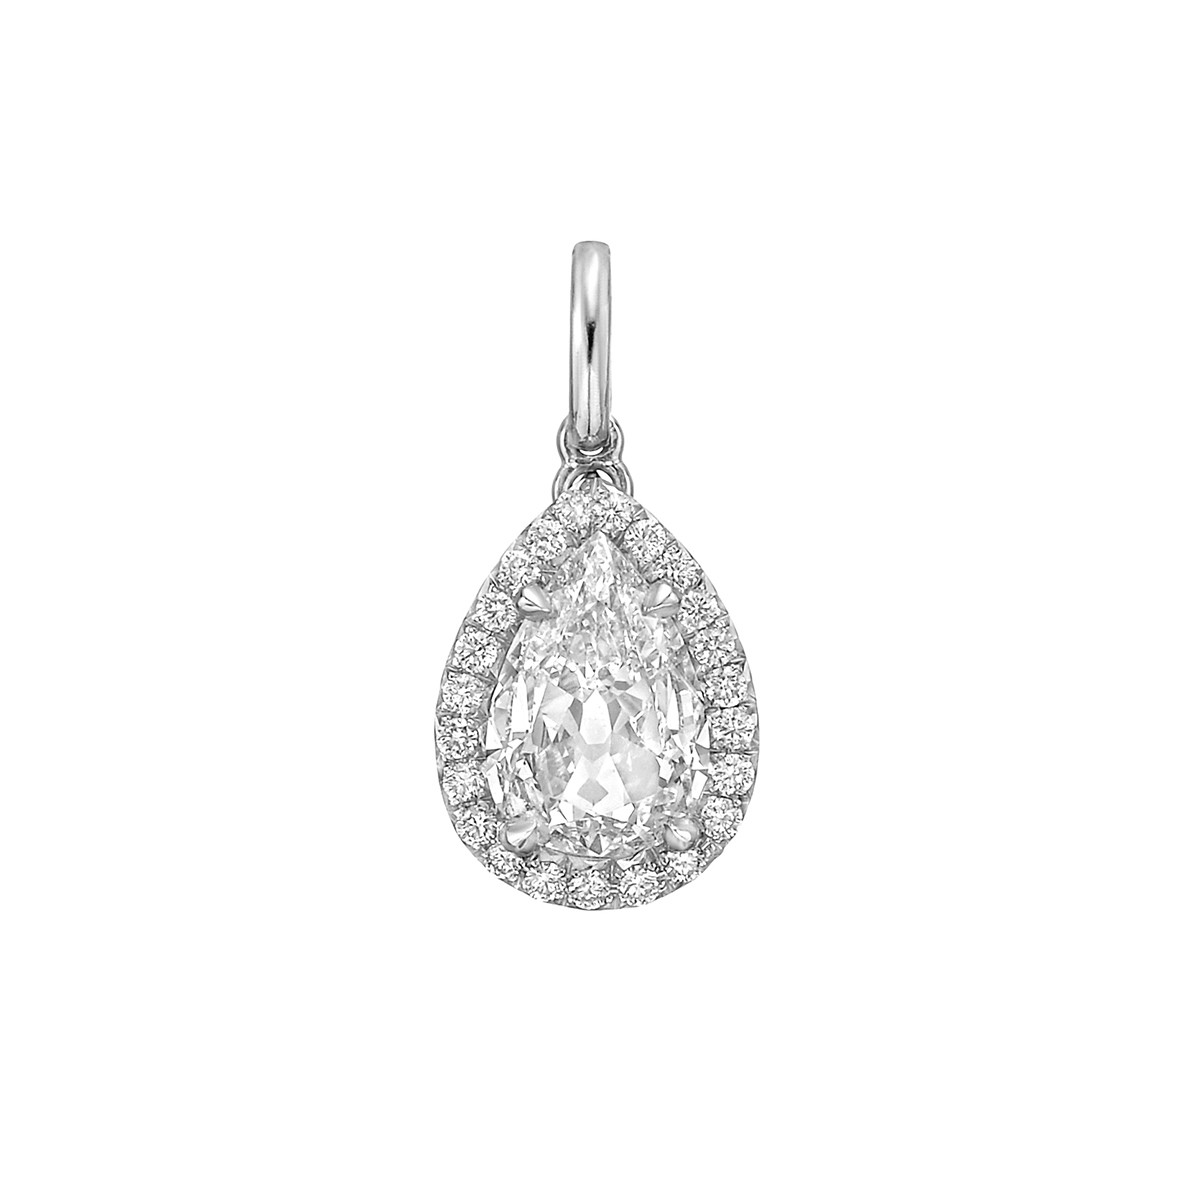 1.17 Carat Pear Brilliant Diamond Halo Pendant